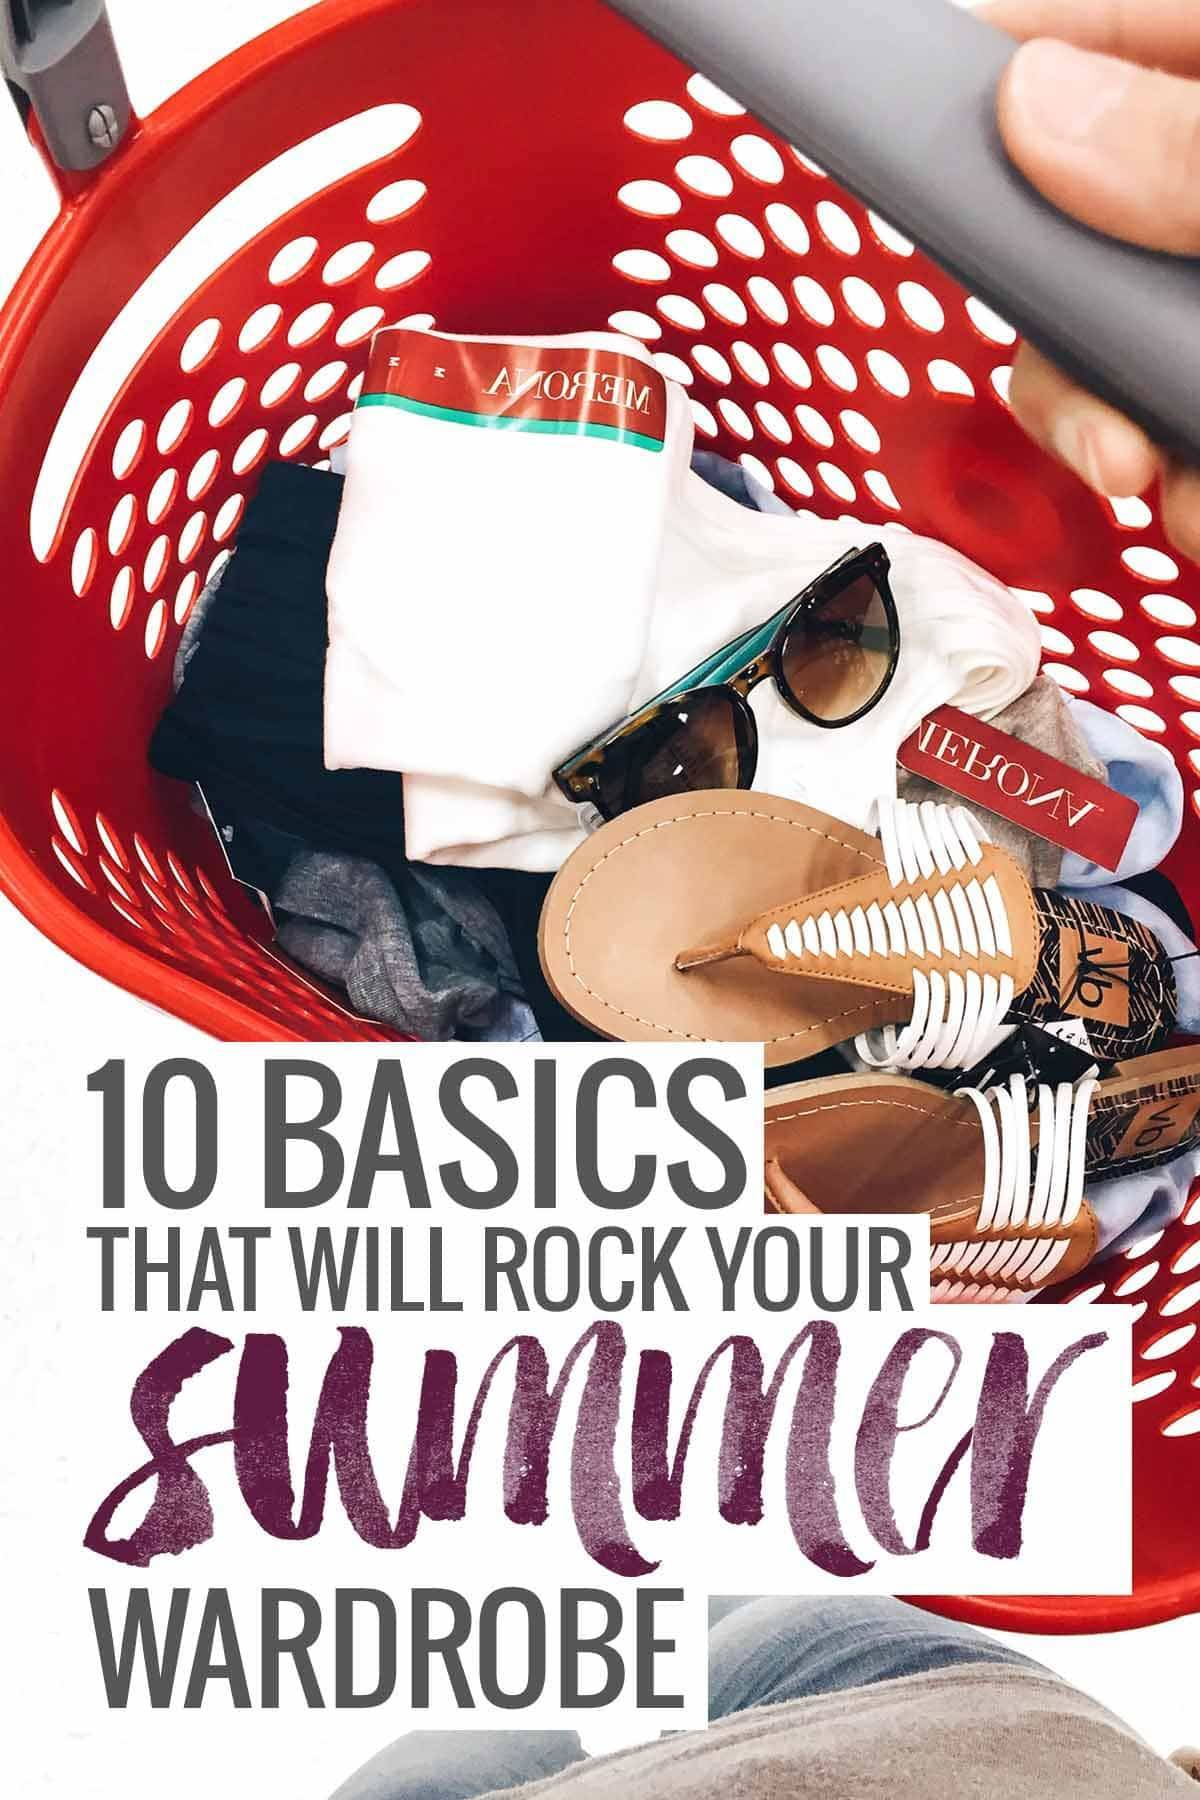 10 Basics that will ROCK your Summer Wardrobe, especially if you are thinking about doing a capsule wardrobe or just simplifying and living with less. | pinchofyum.com